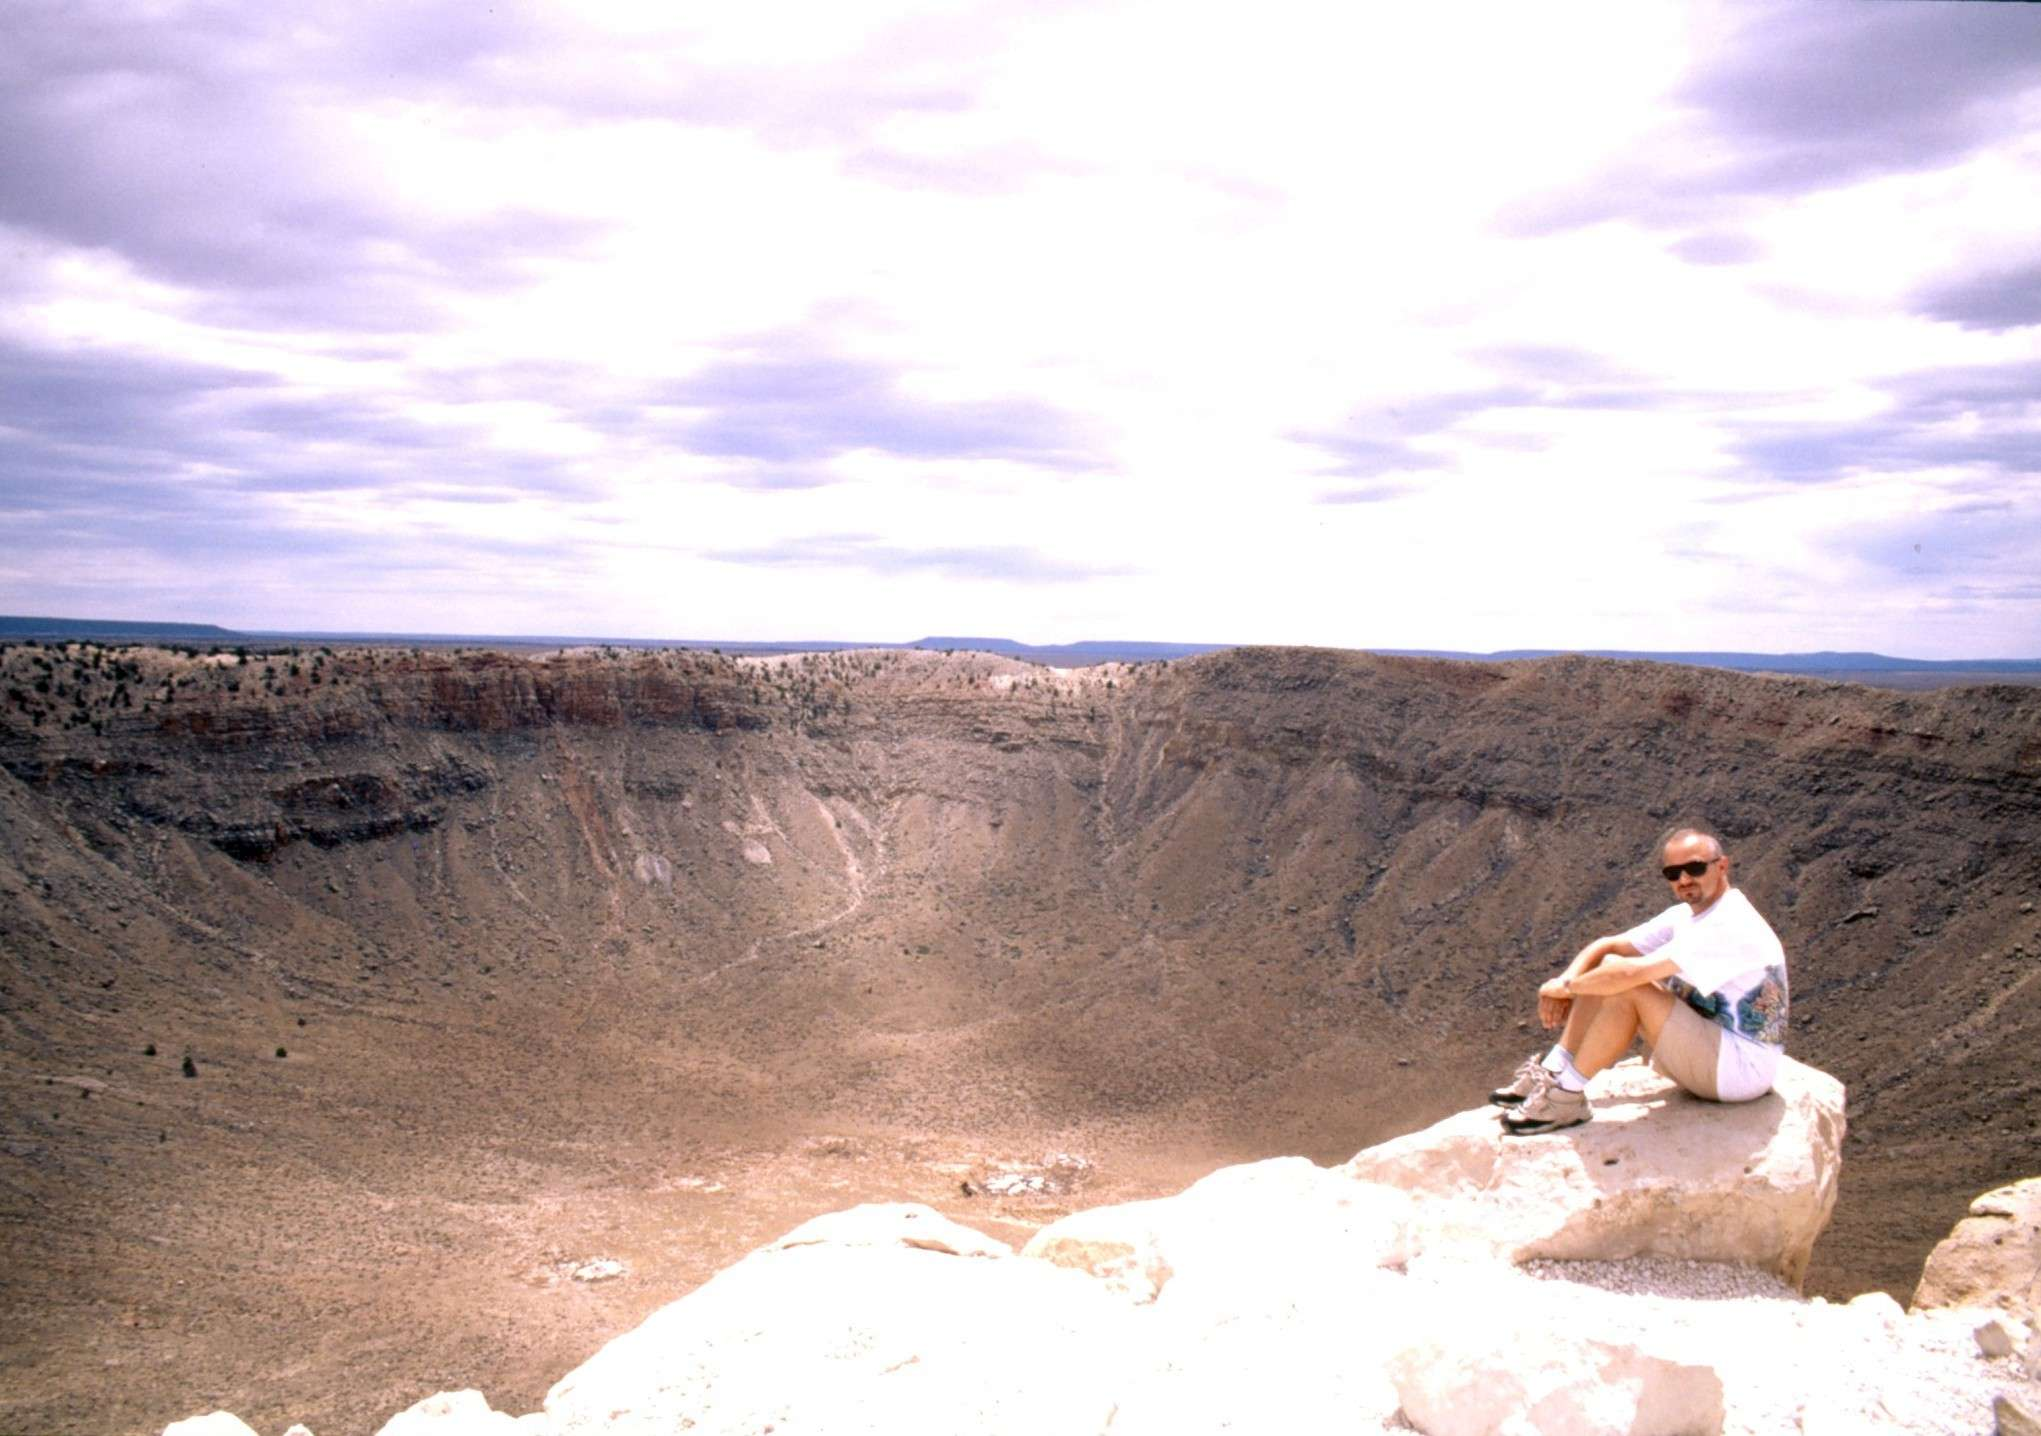 Meteor Crater: 219 KB; click on the image to enlarge